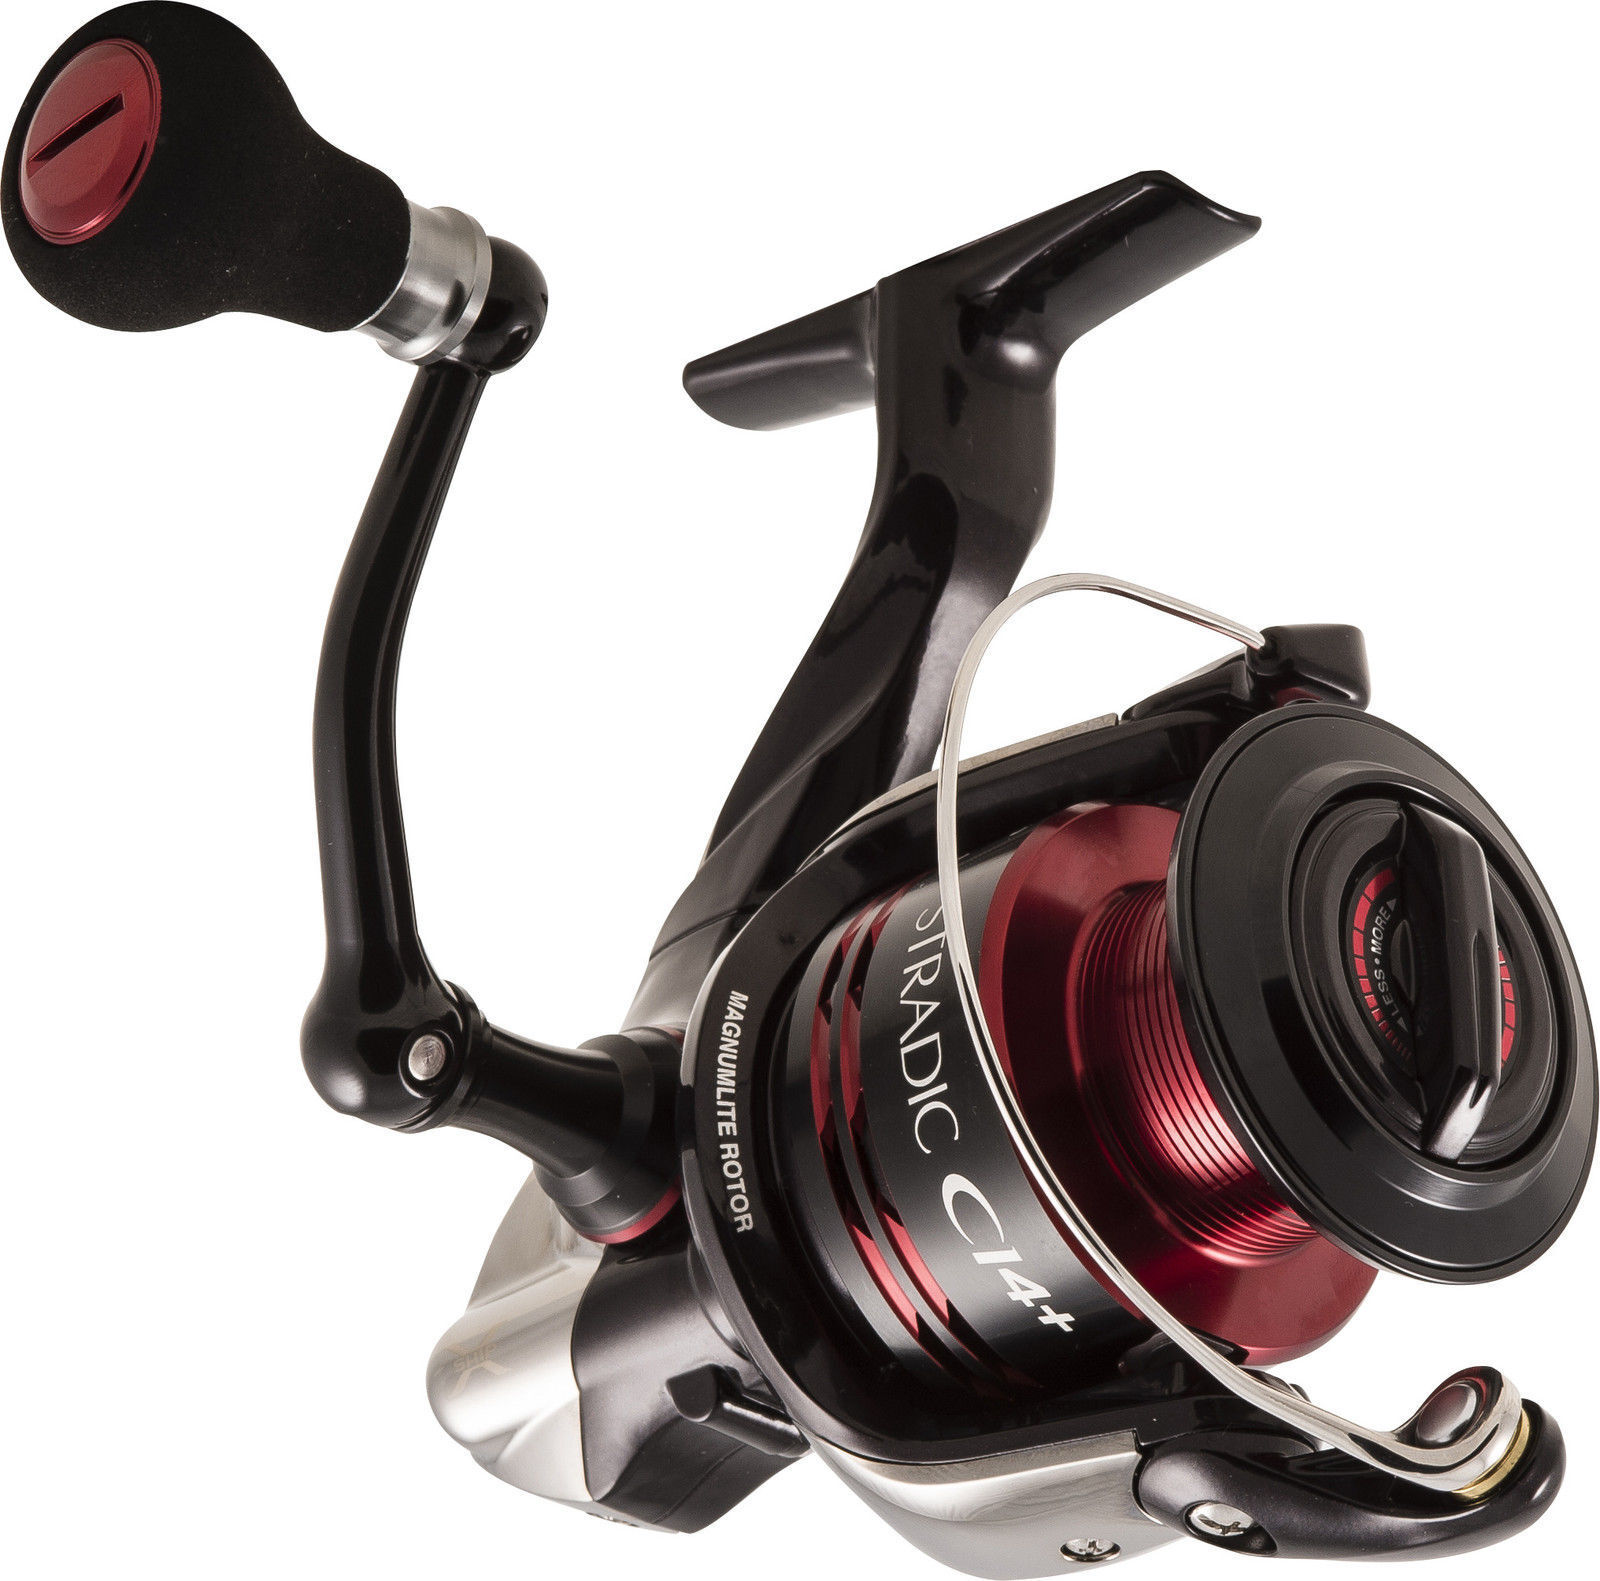 Top 10 bass fishing reels ebay for Best spinning reel for bass fishing